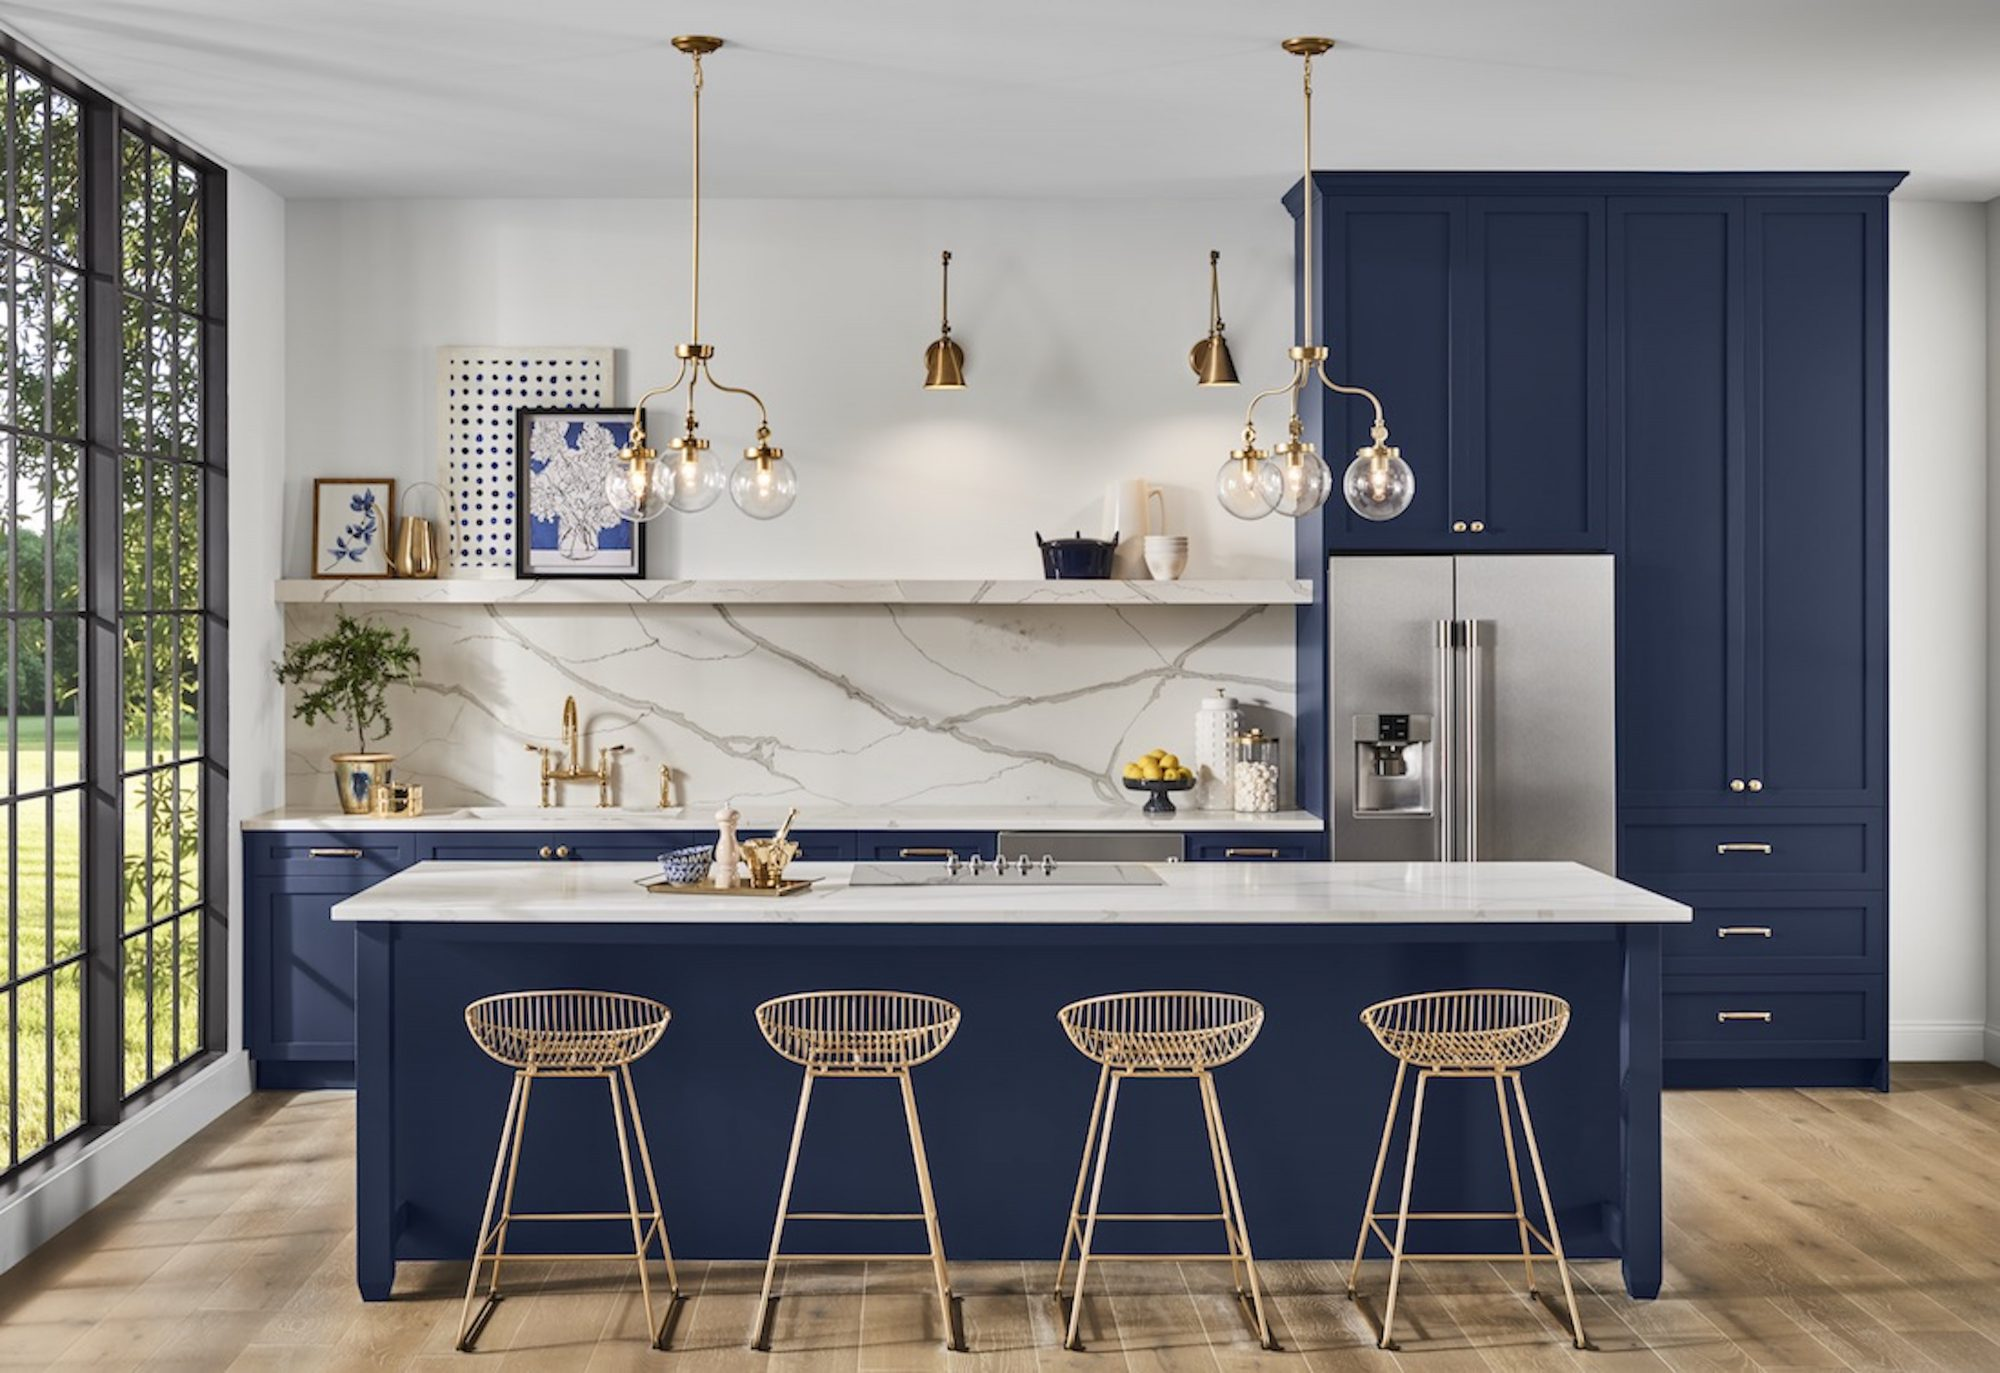 Sherwin-Williams 2020 Color of the Year